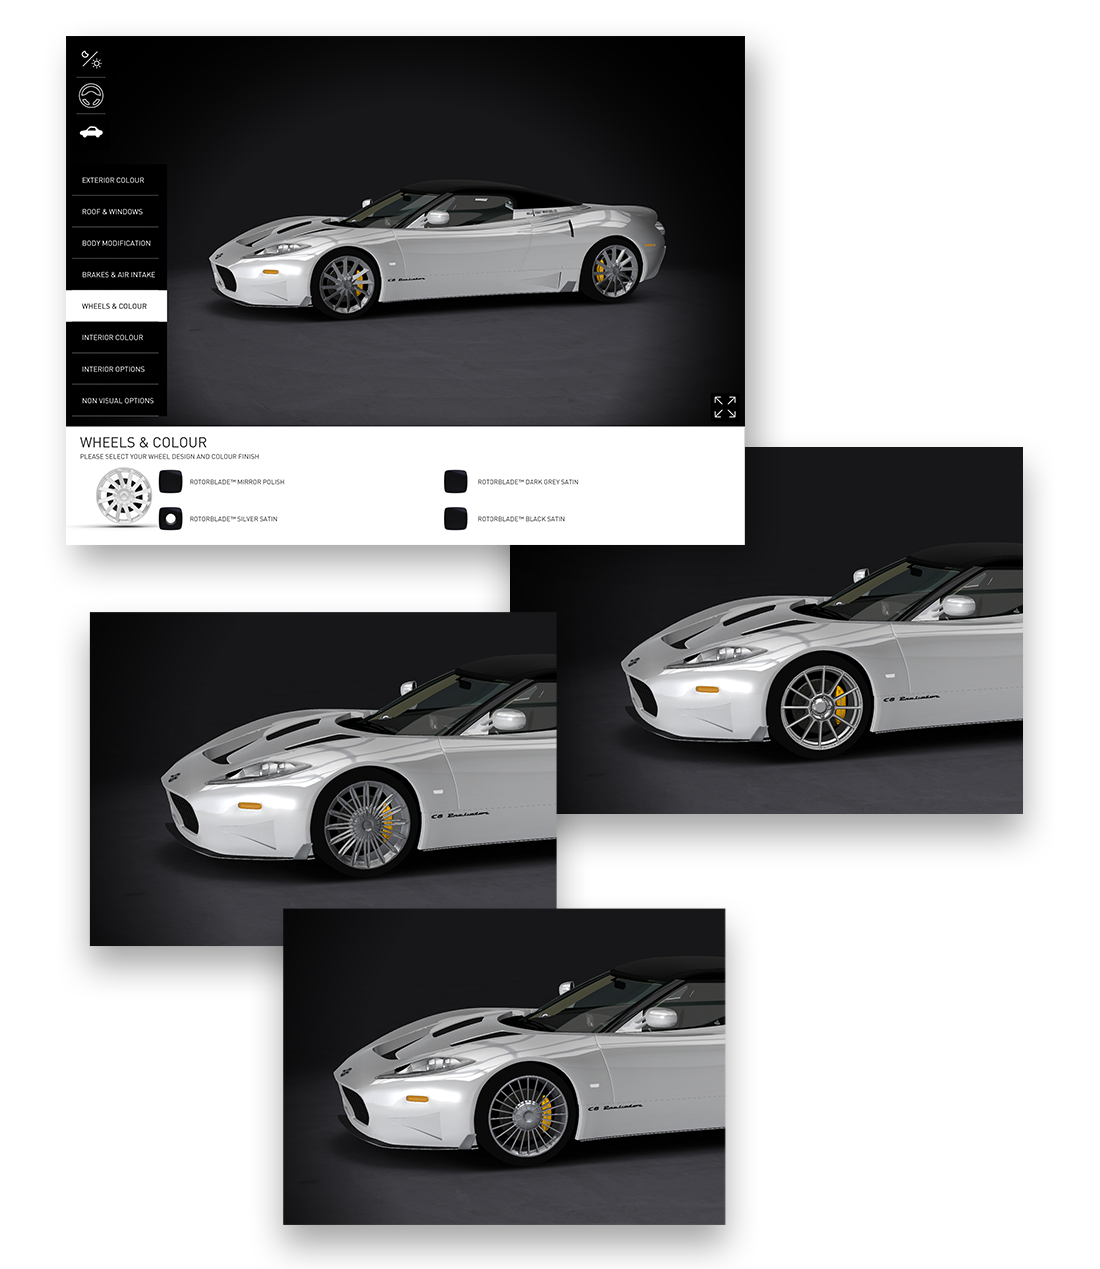 innovative-digital-amsterdam-spyker-cars-configurator-wheels-02